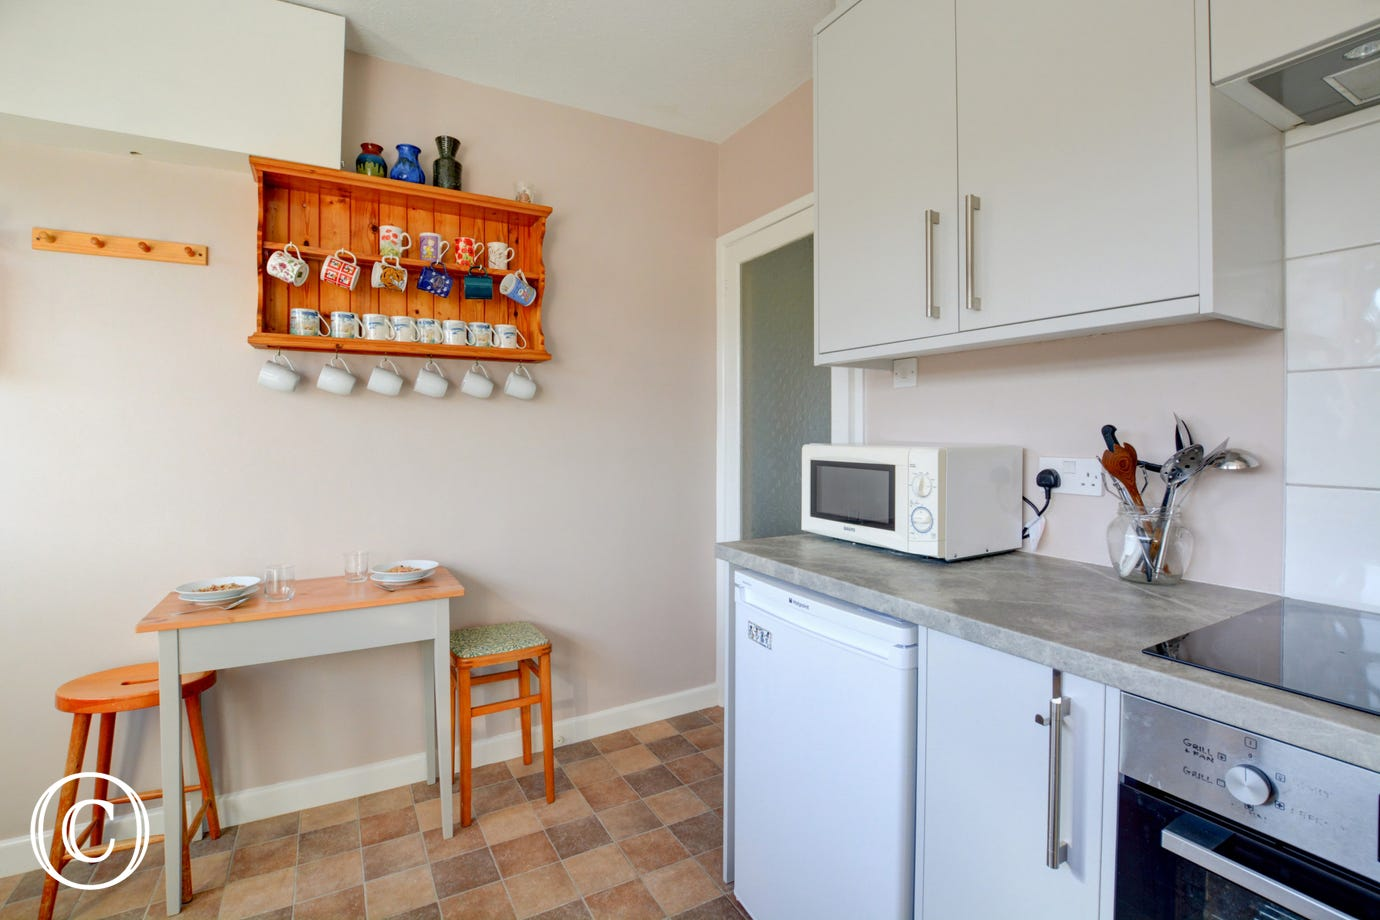 There is a small dining area within the kitchen.